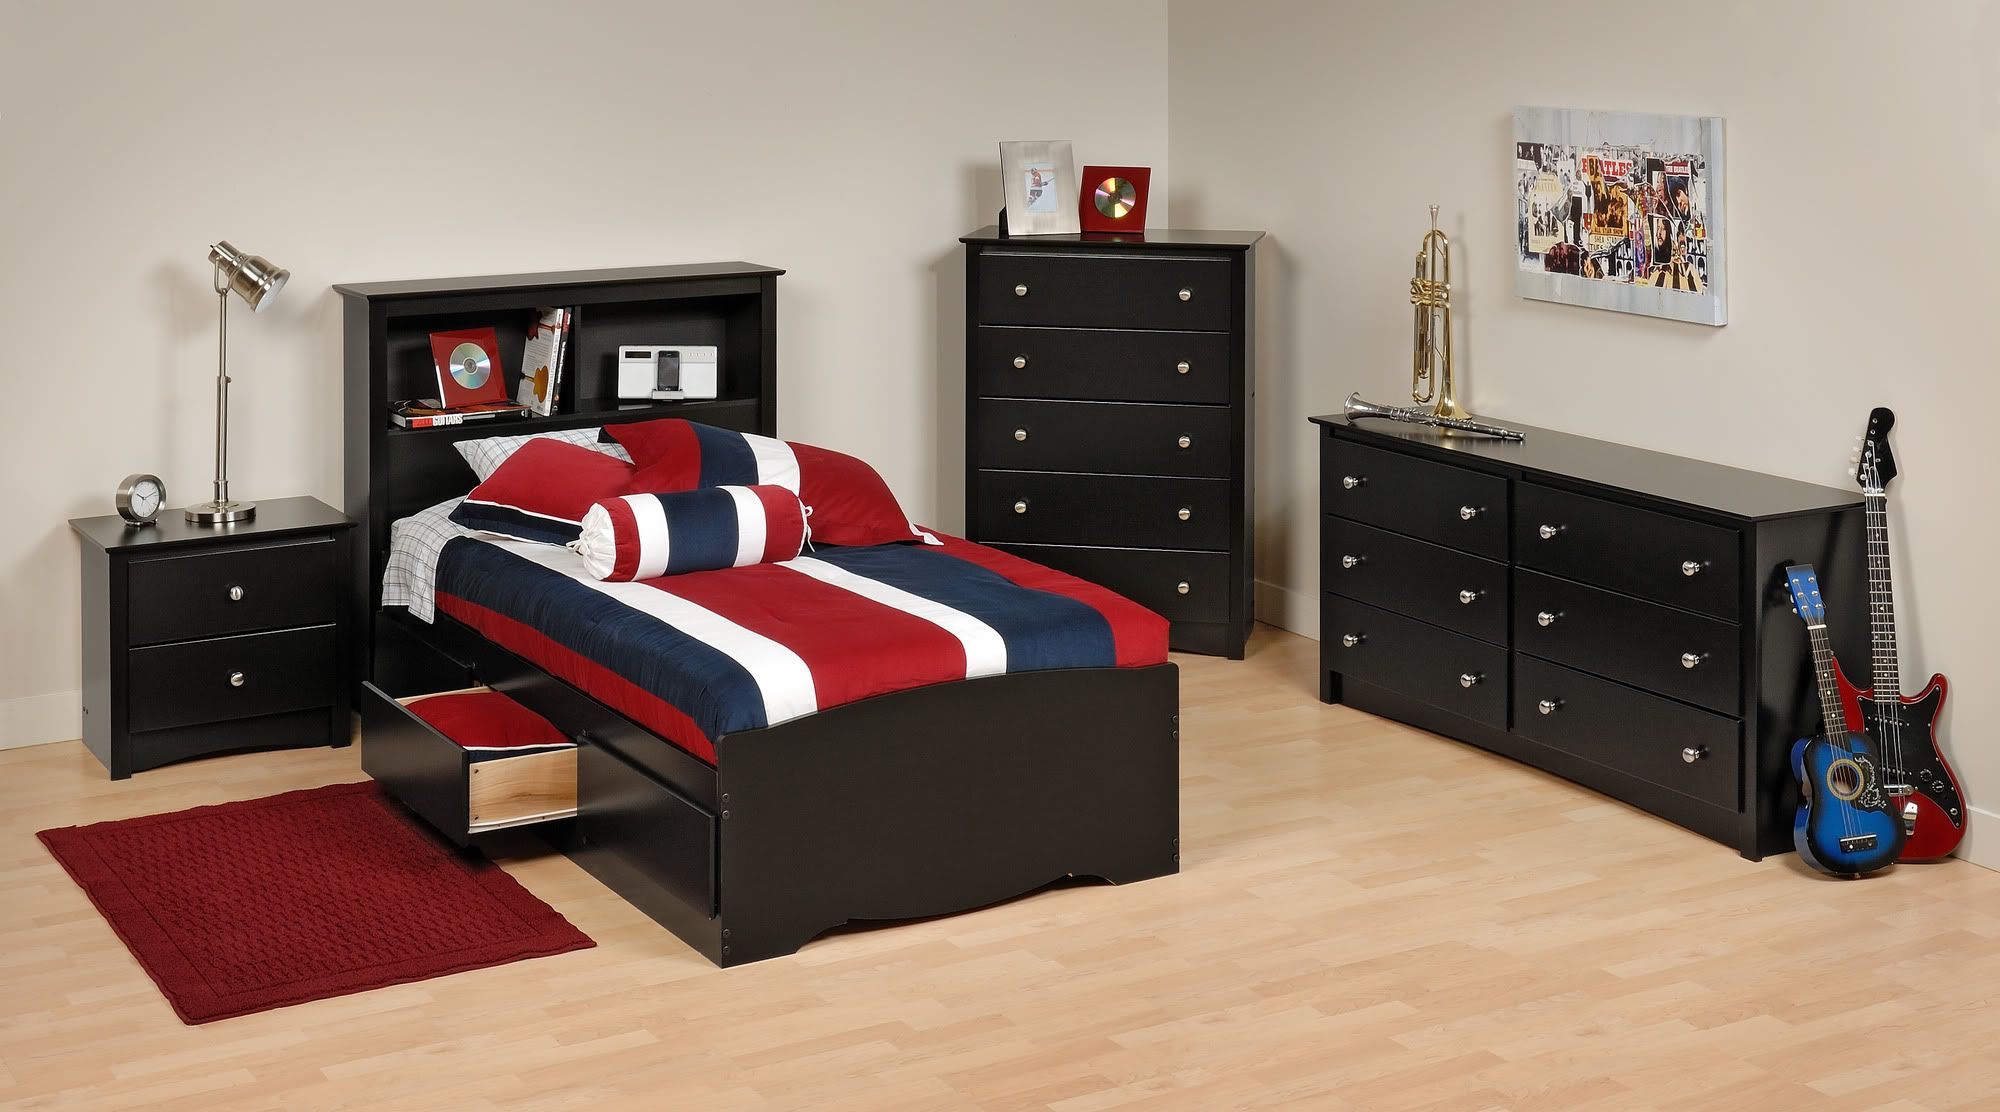 Alluring boys bedroom set with twin size bookcase bed and - All in one double bed ...